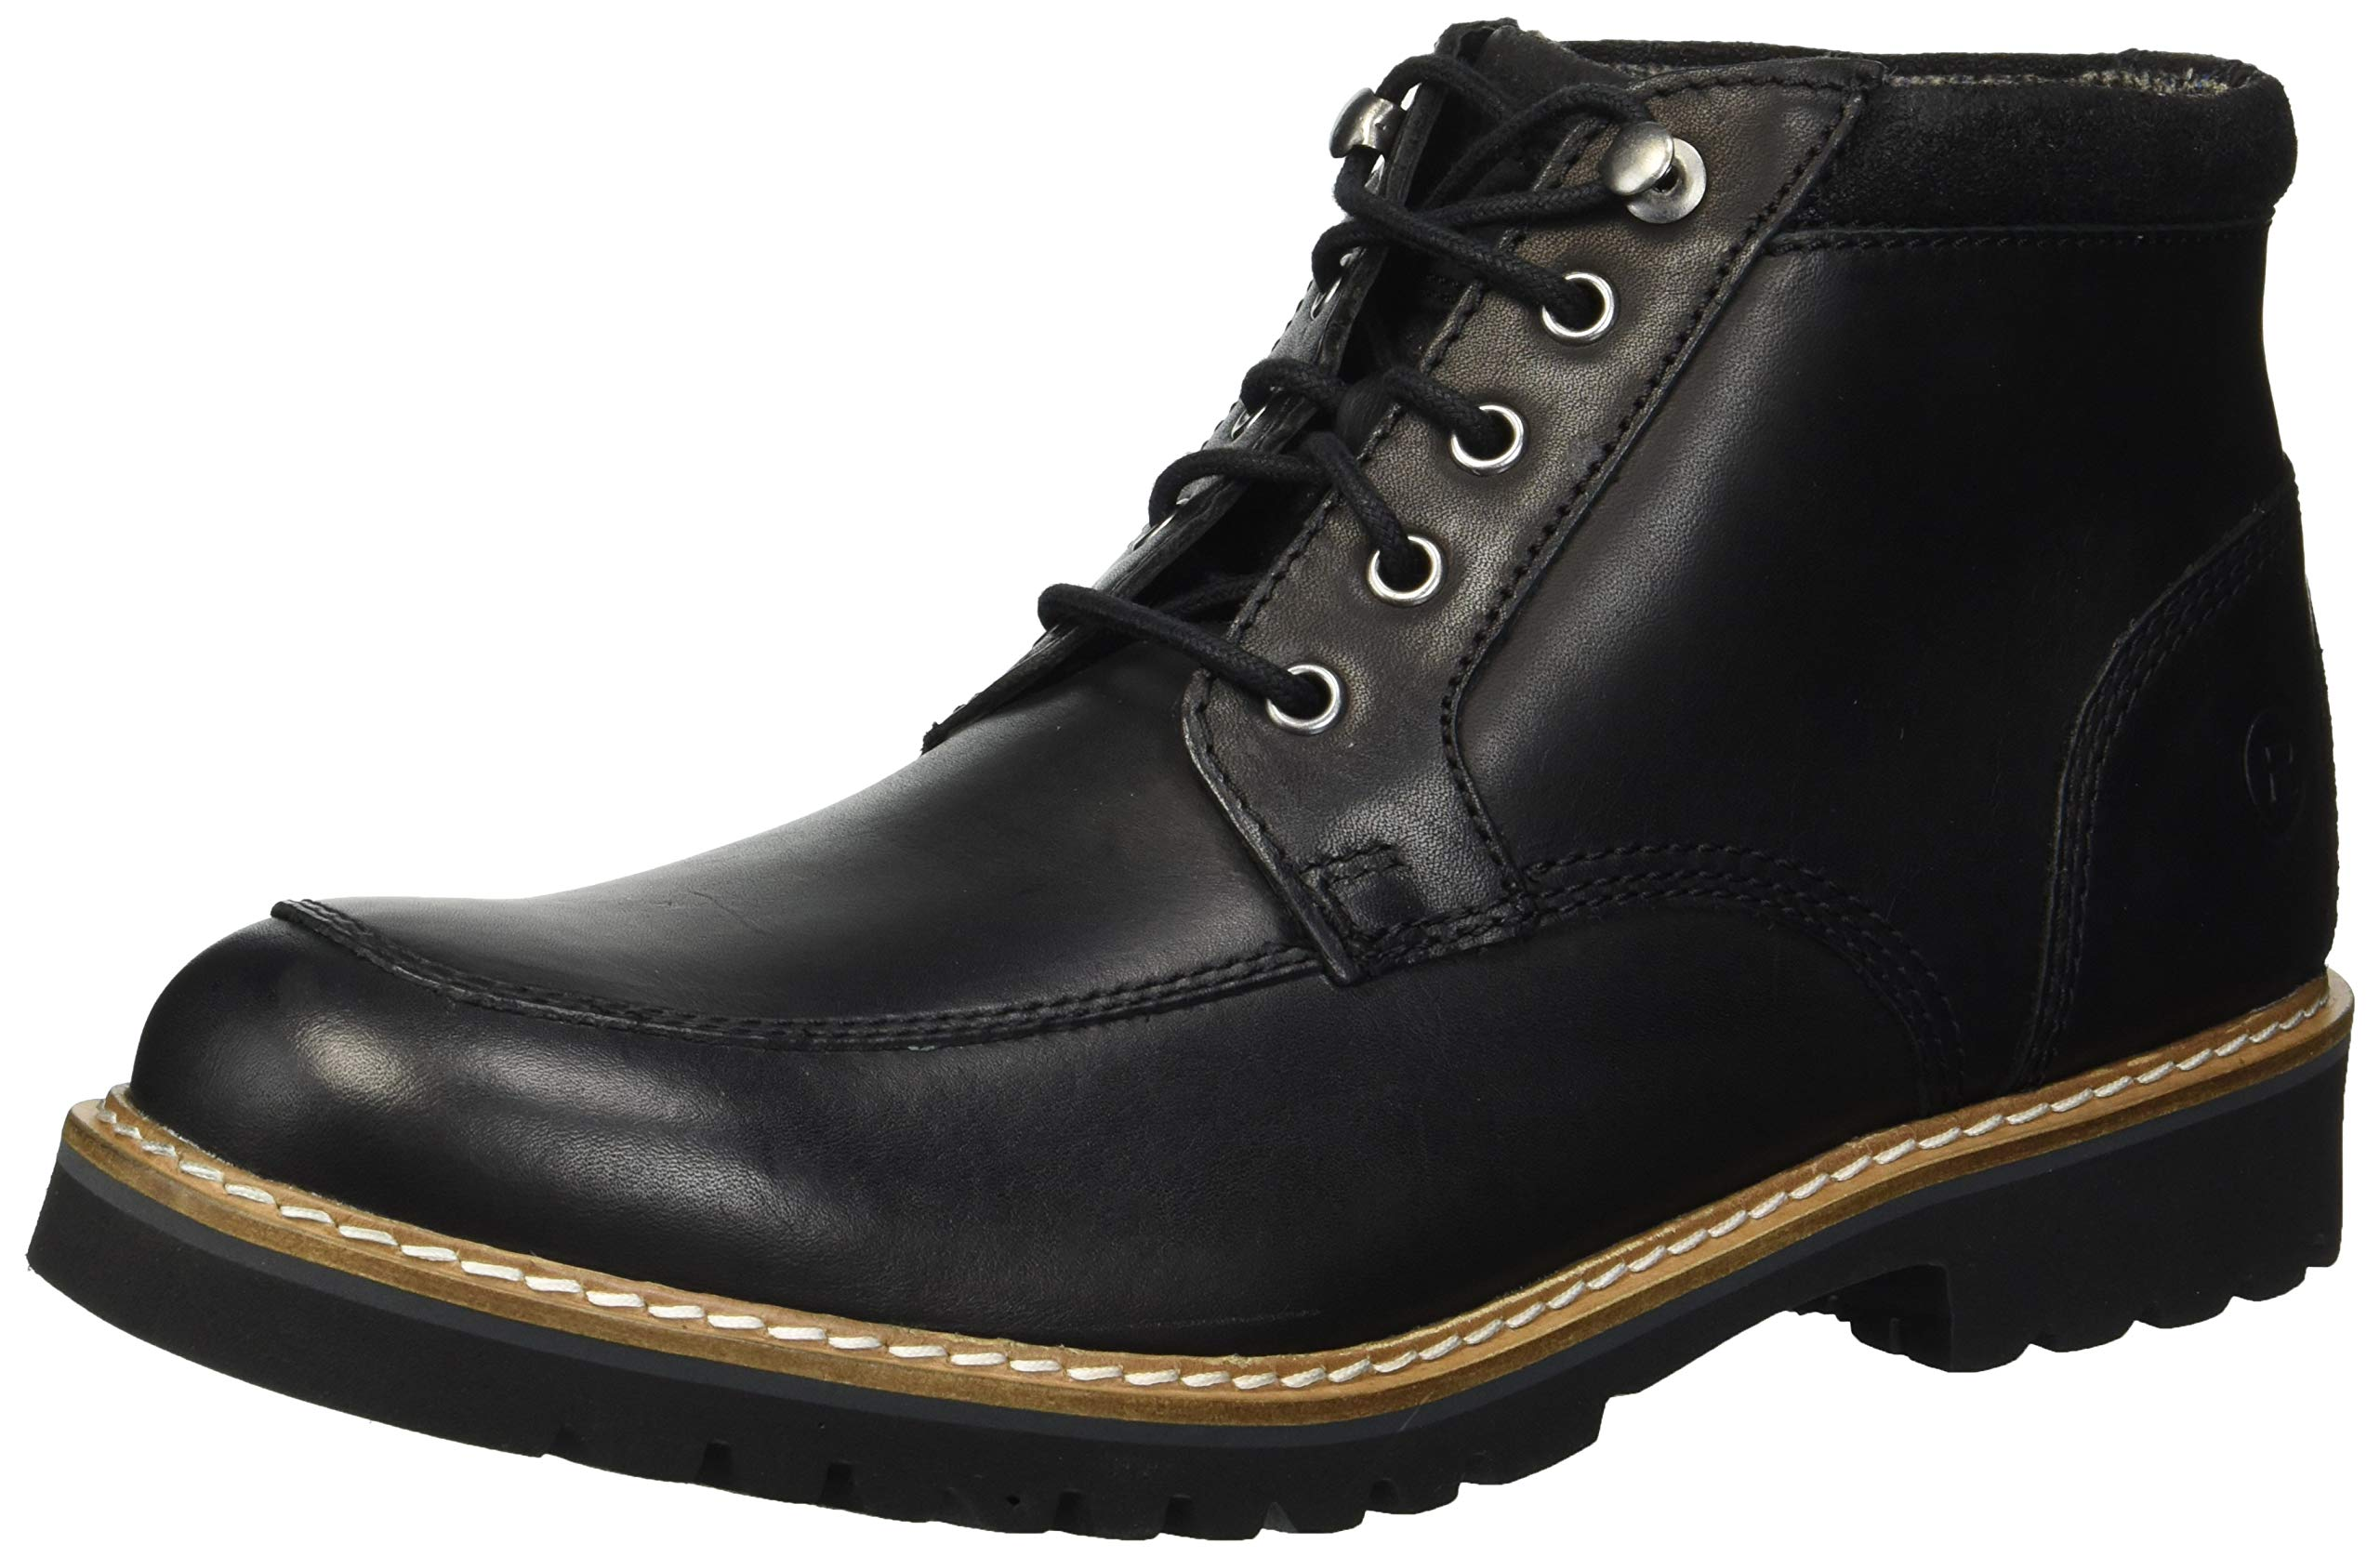 Rockport Men's Marshall Rugged Moc Toe Ankle Boot